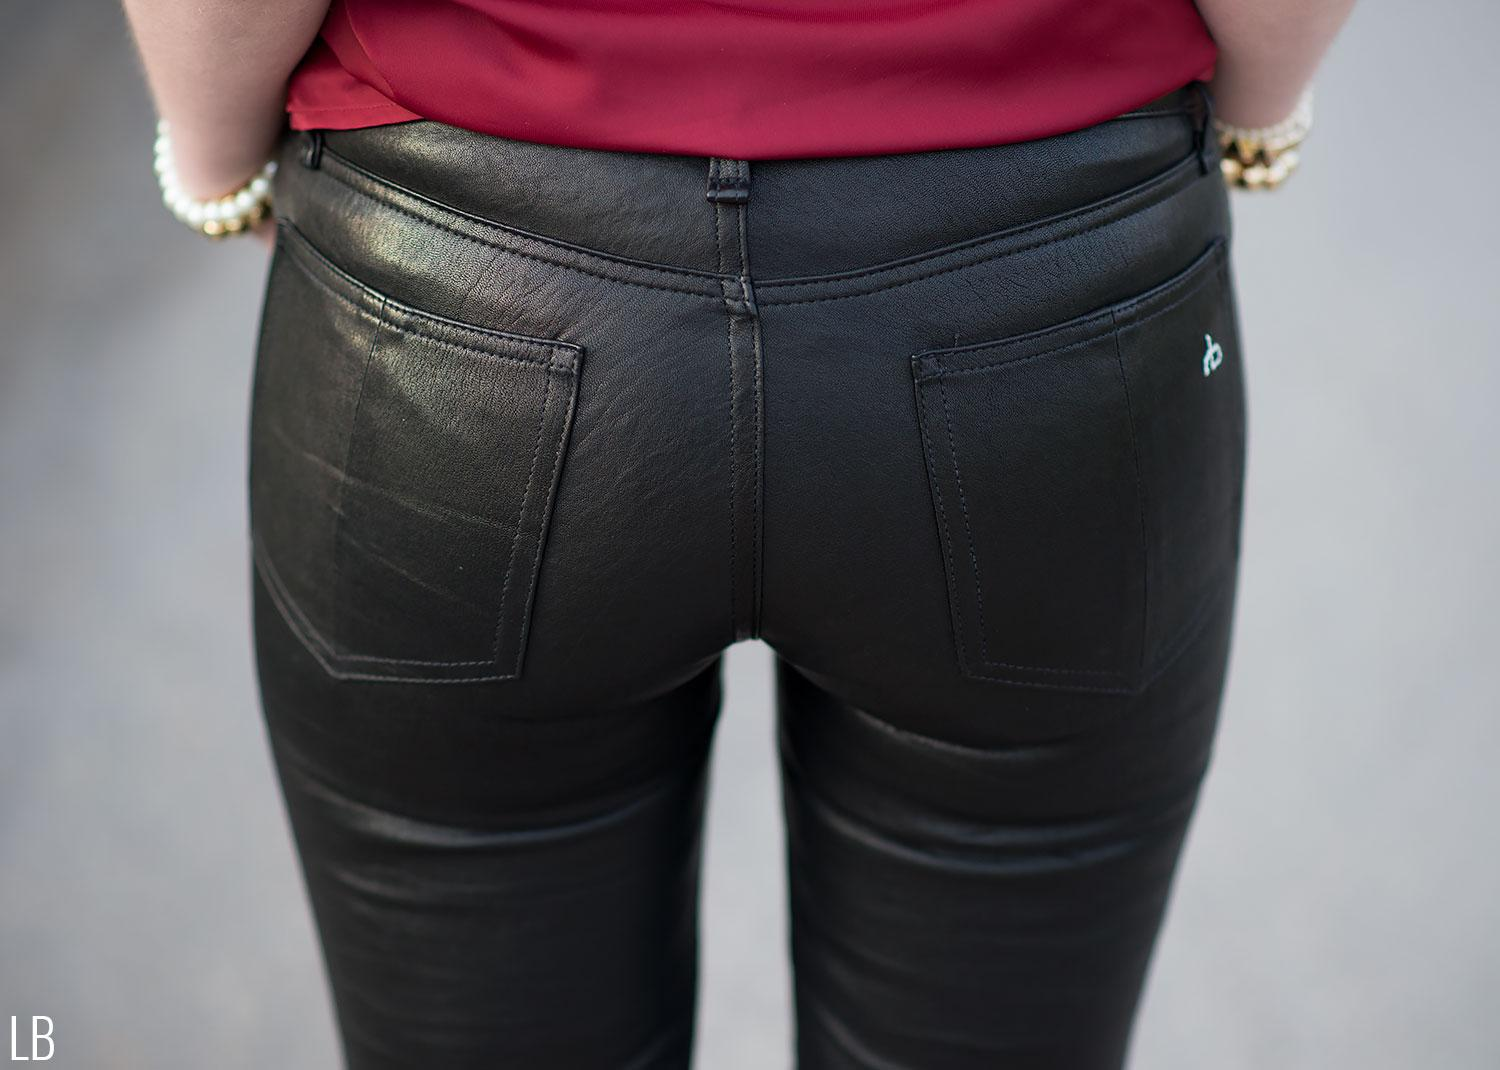 The Black Leather Pants Amp Maroon Lace Blouse Raindrops